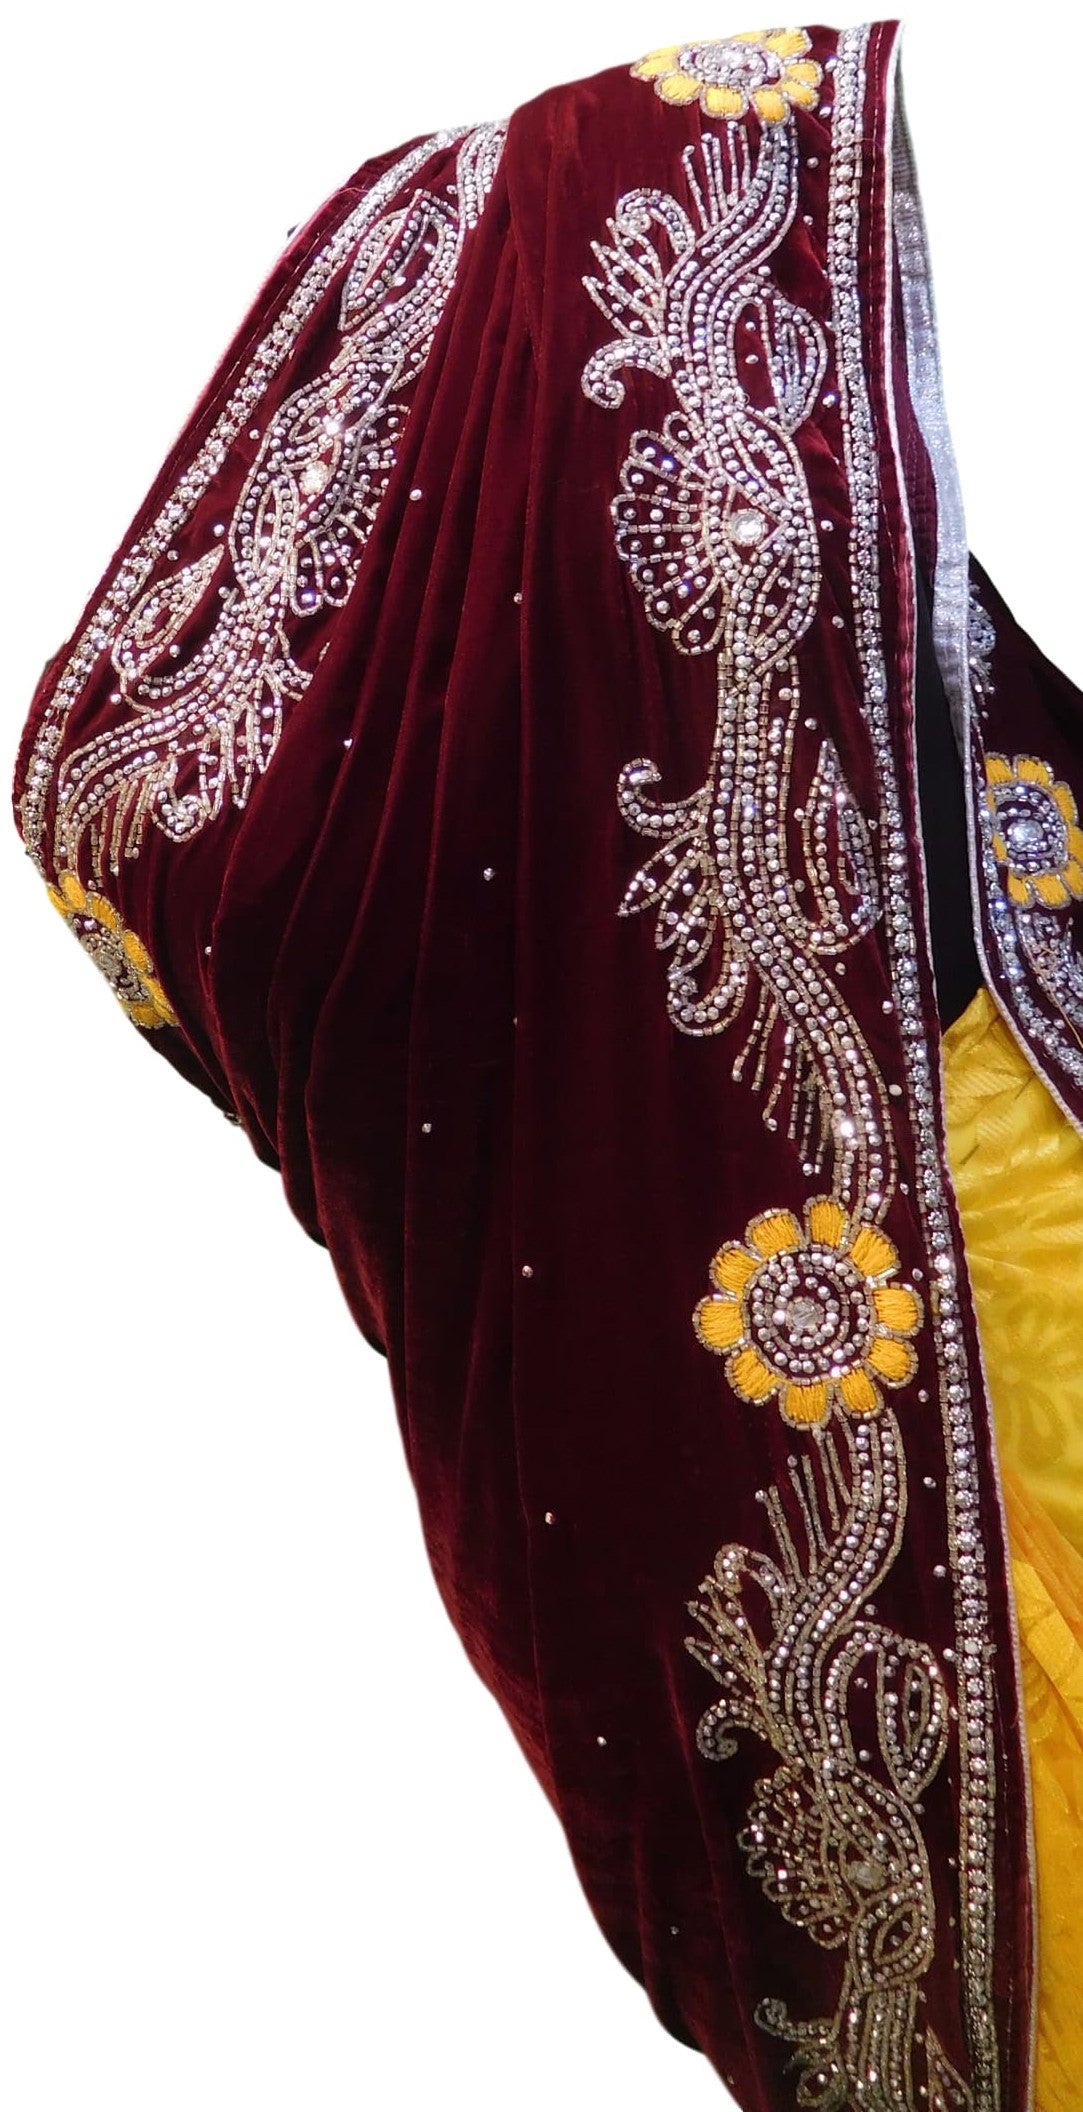 Merron & Yellow Designer Velvet & Brasso Hand Embroidery Saree Sari With Velvet Blouse